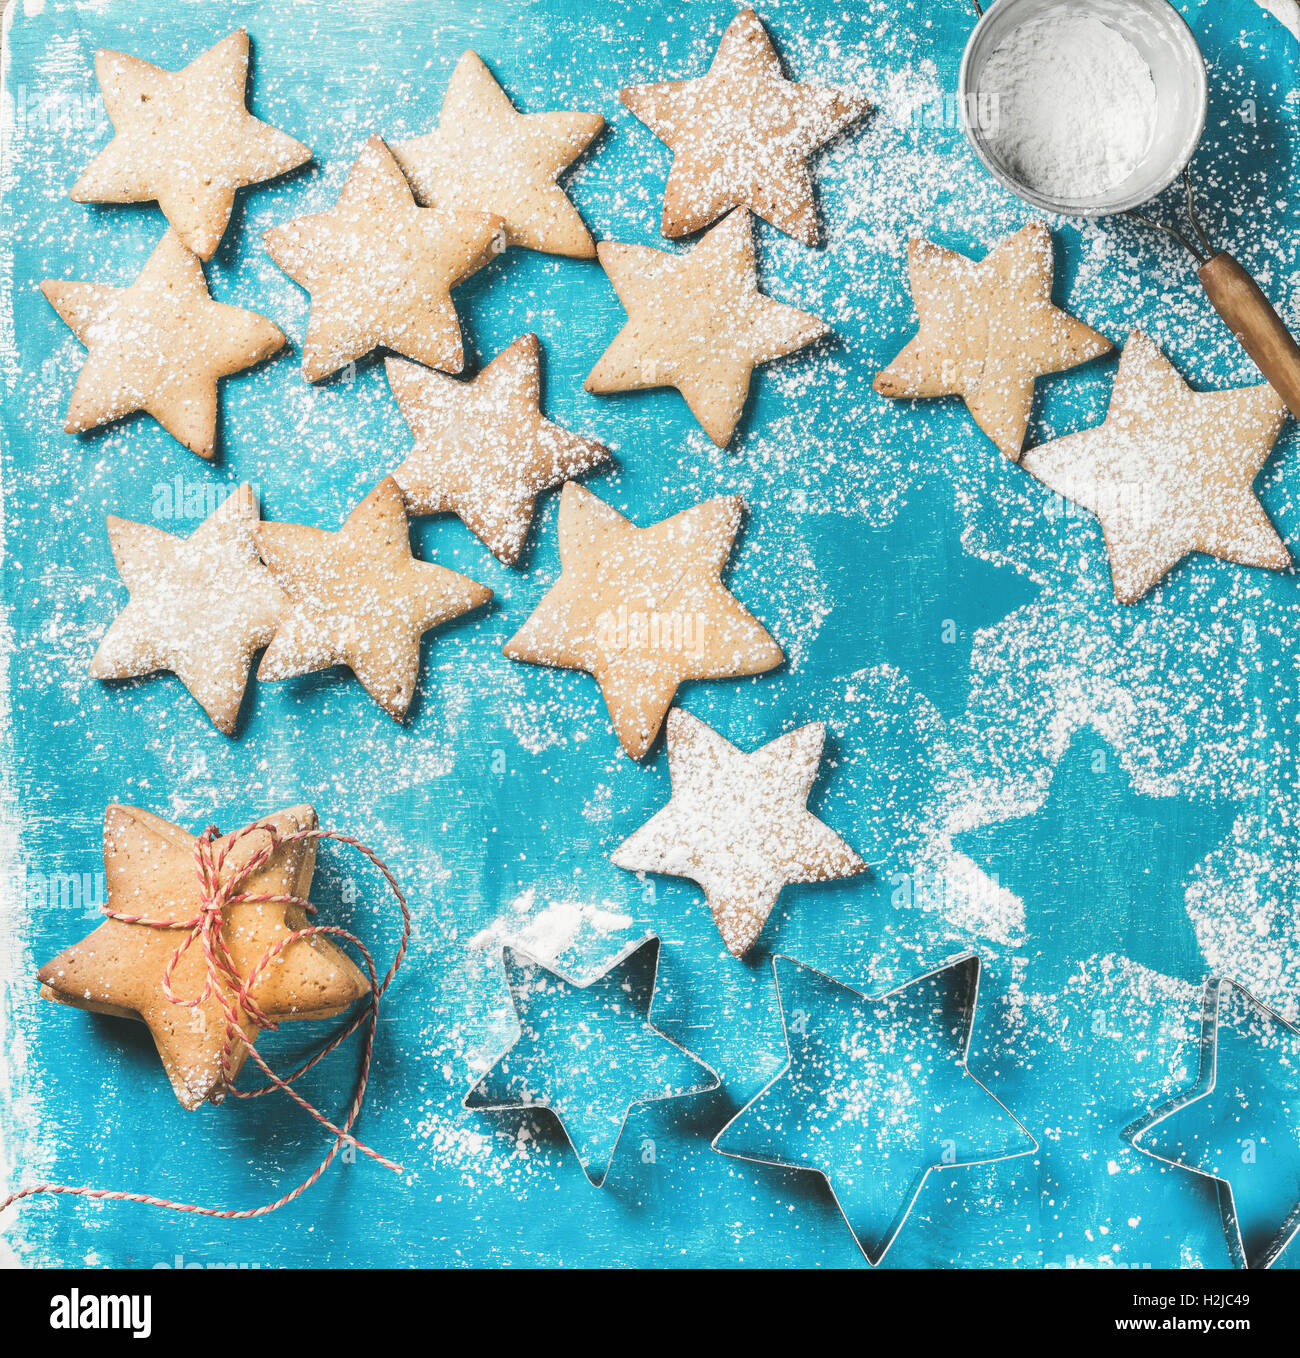 Sweet gingerbread cookies with sugar powder and metal shapes - Stock Image